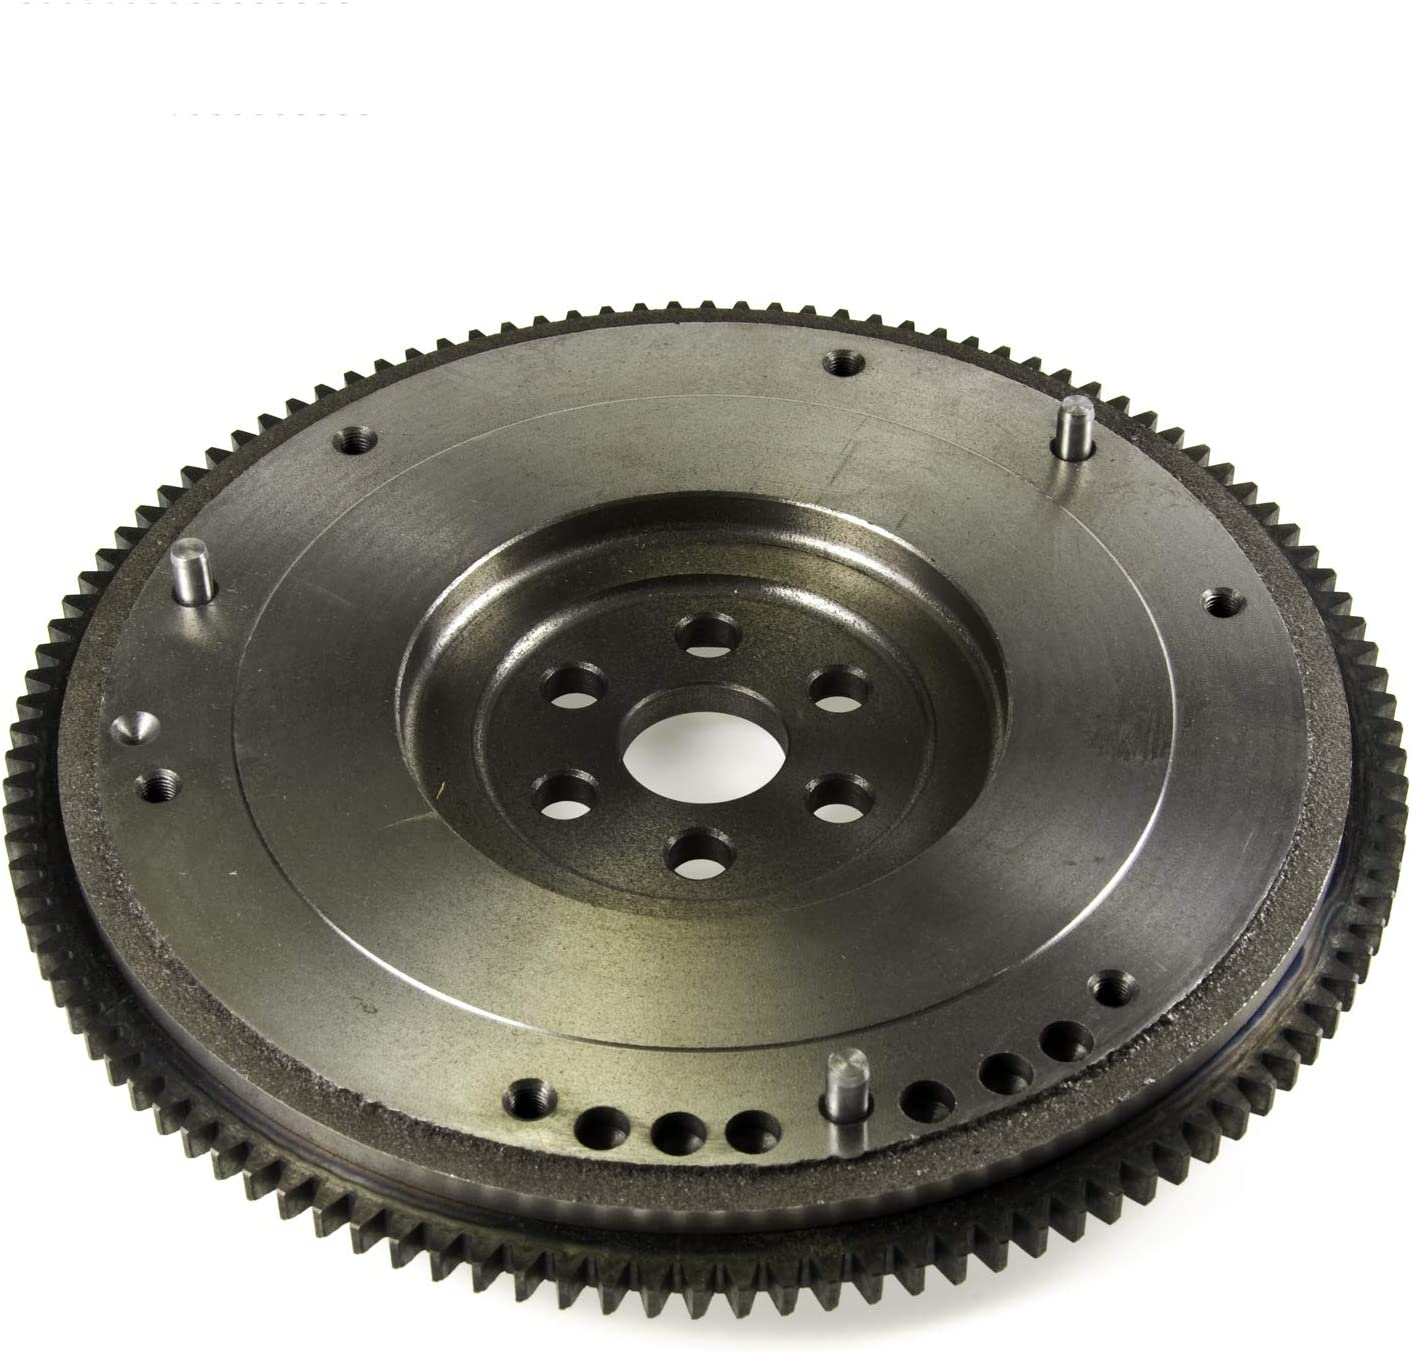 We OFFer at cheap prices LuK Many popular brands LFW222 Flywheel